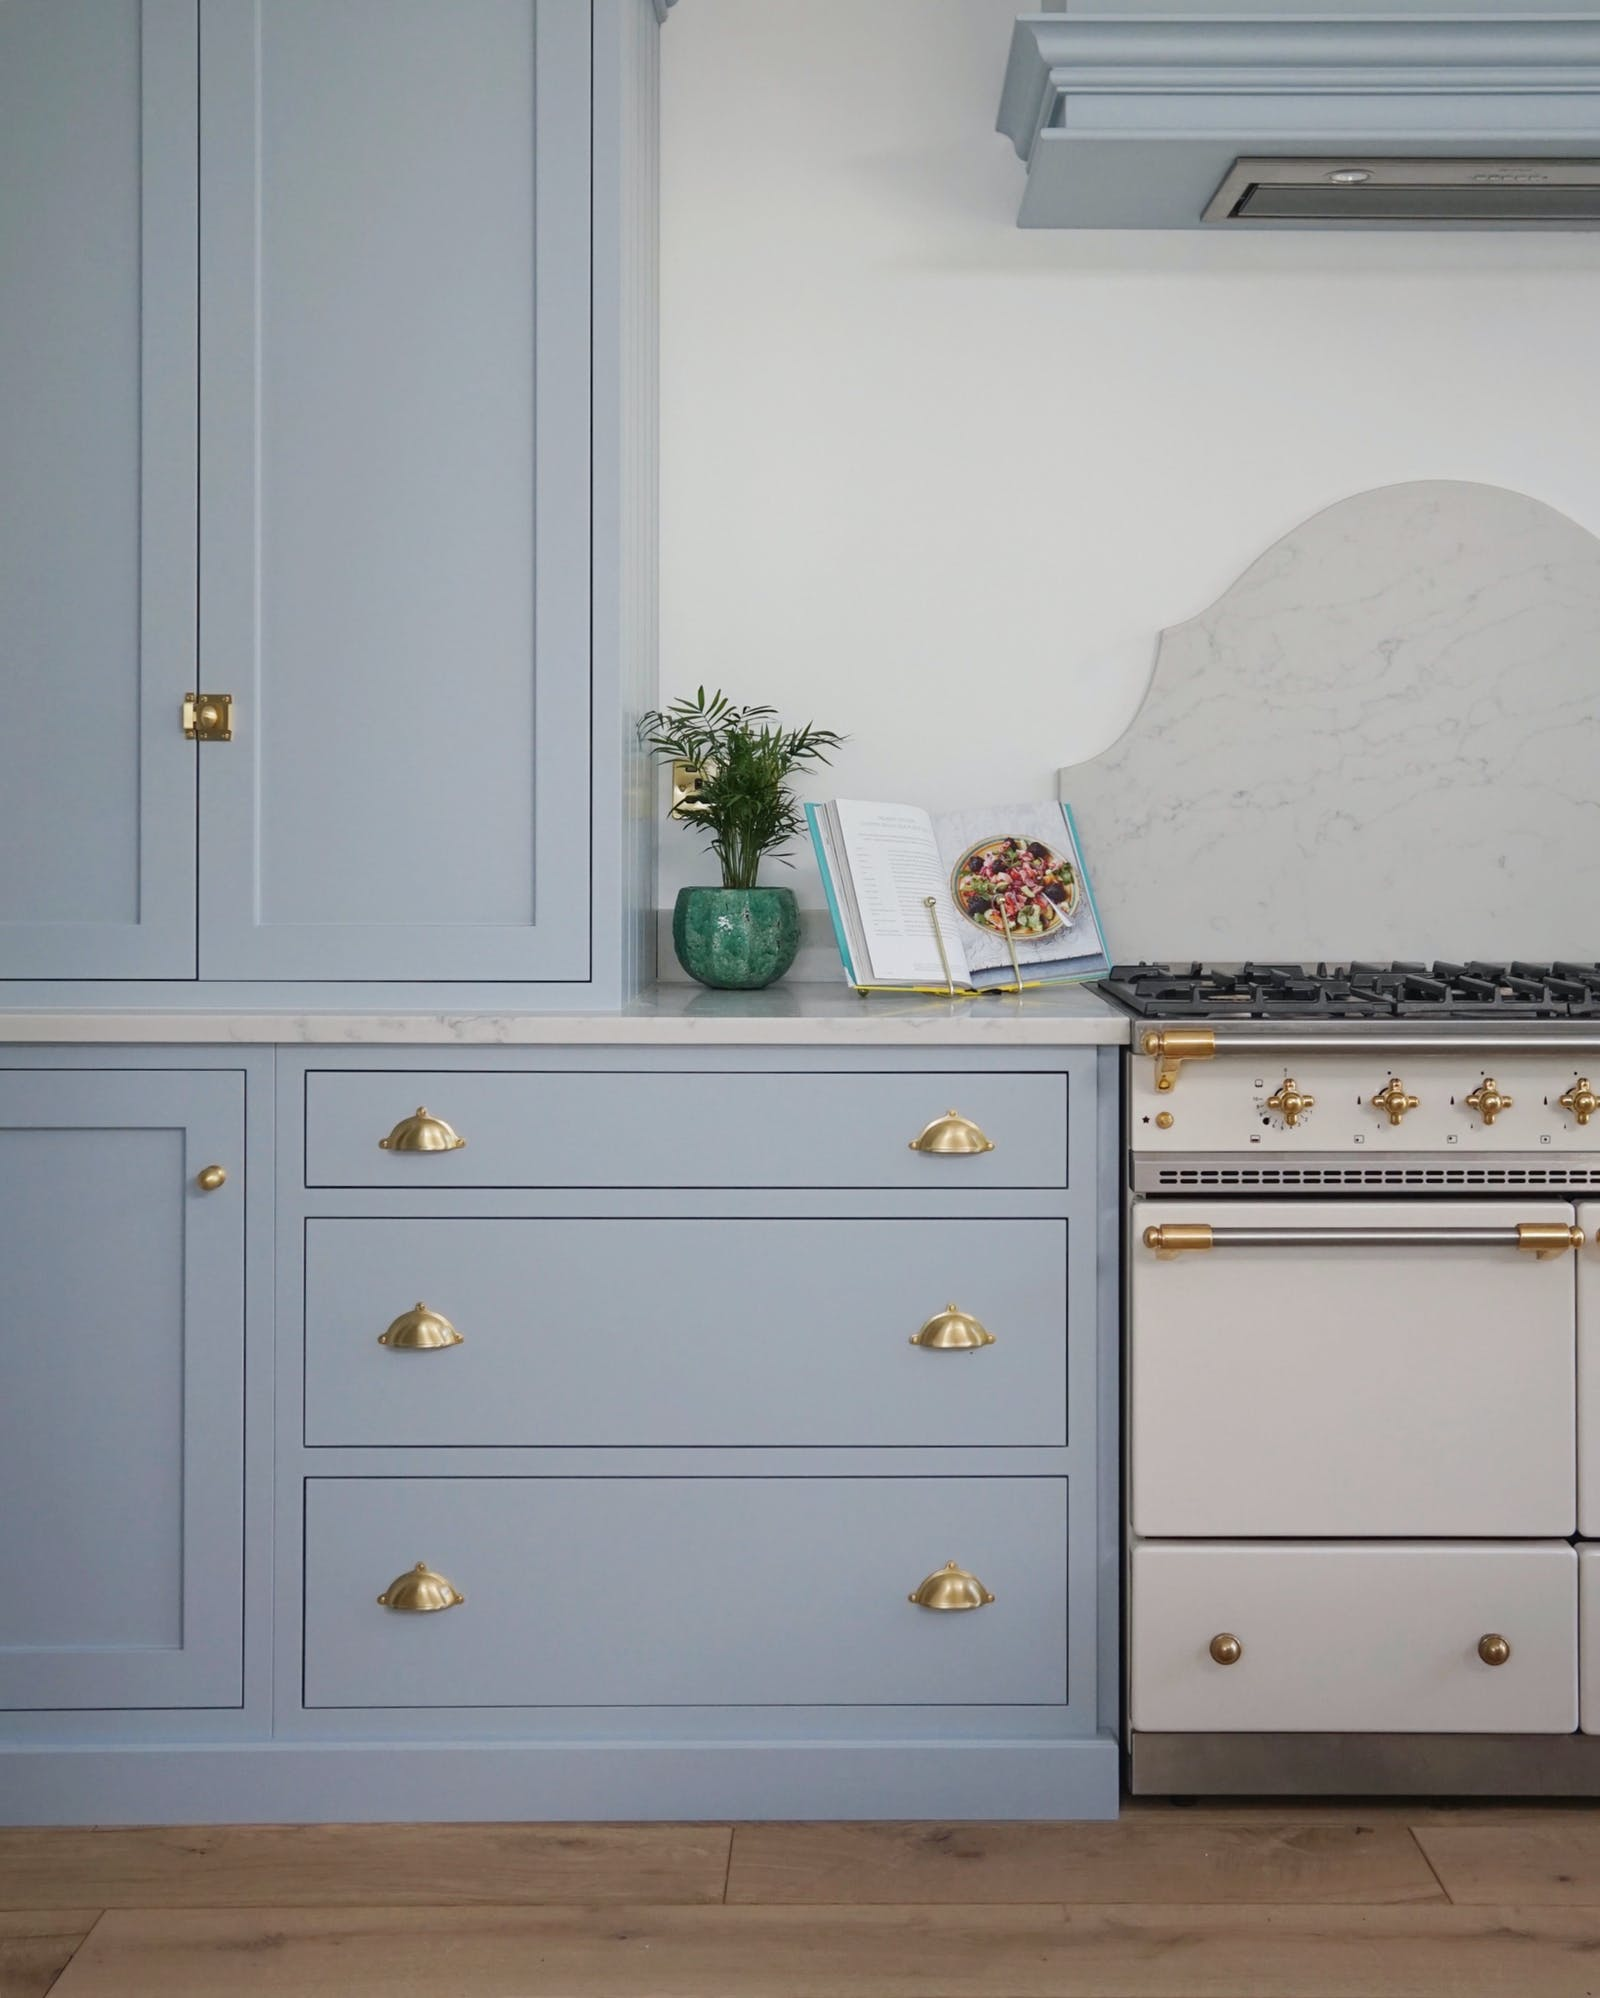 Kitchen cabinet painted in light blue